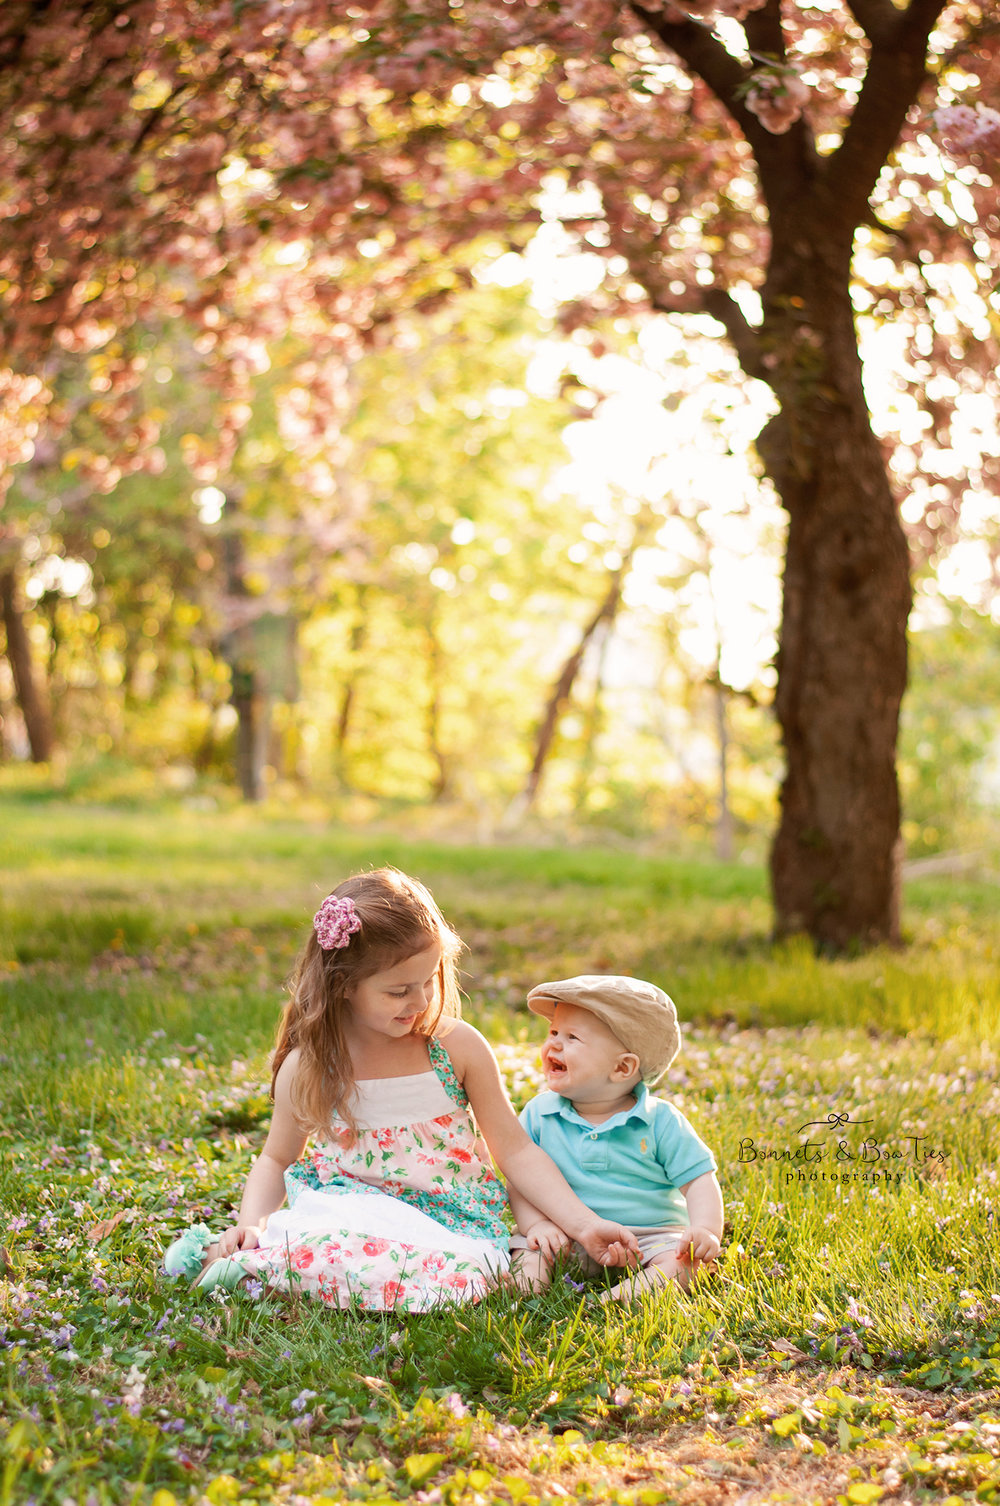 boy and girl session at blossom trees in york pa.jpg